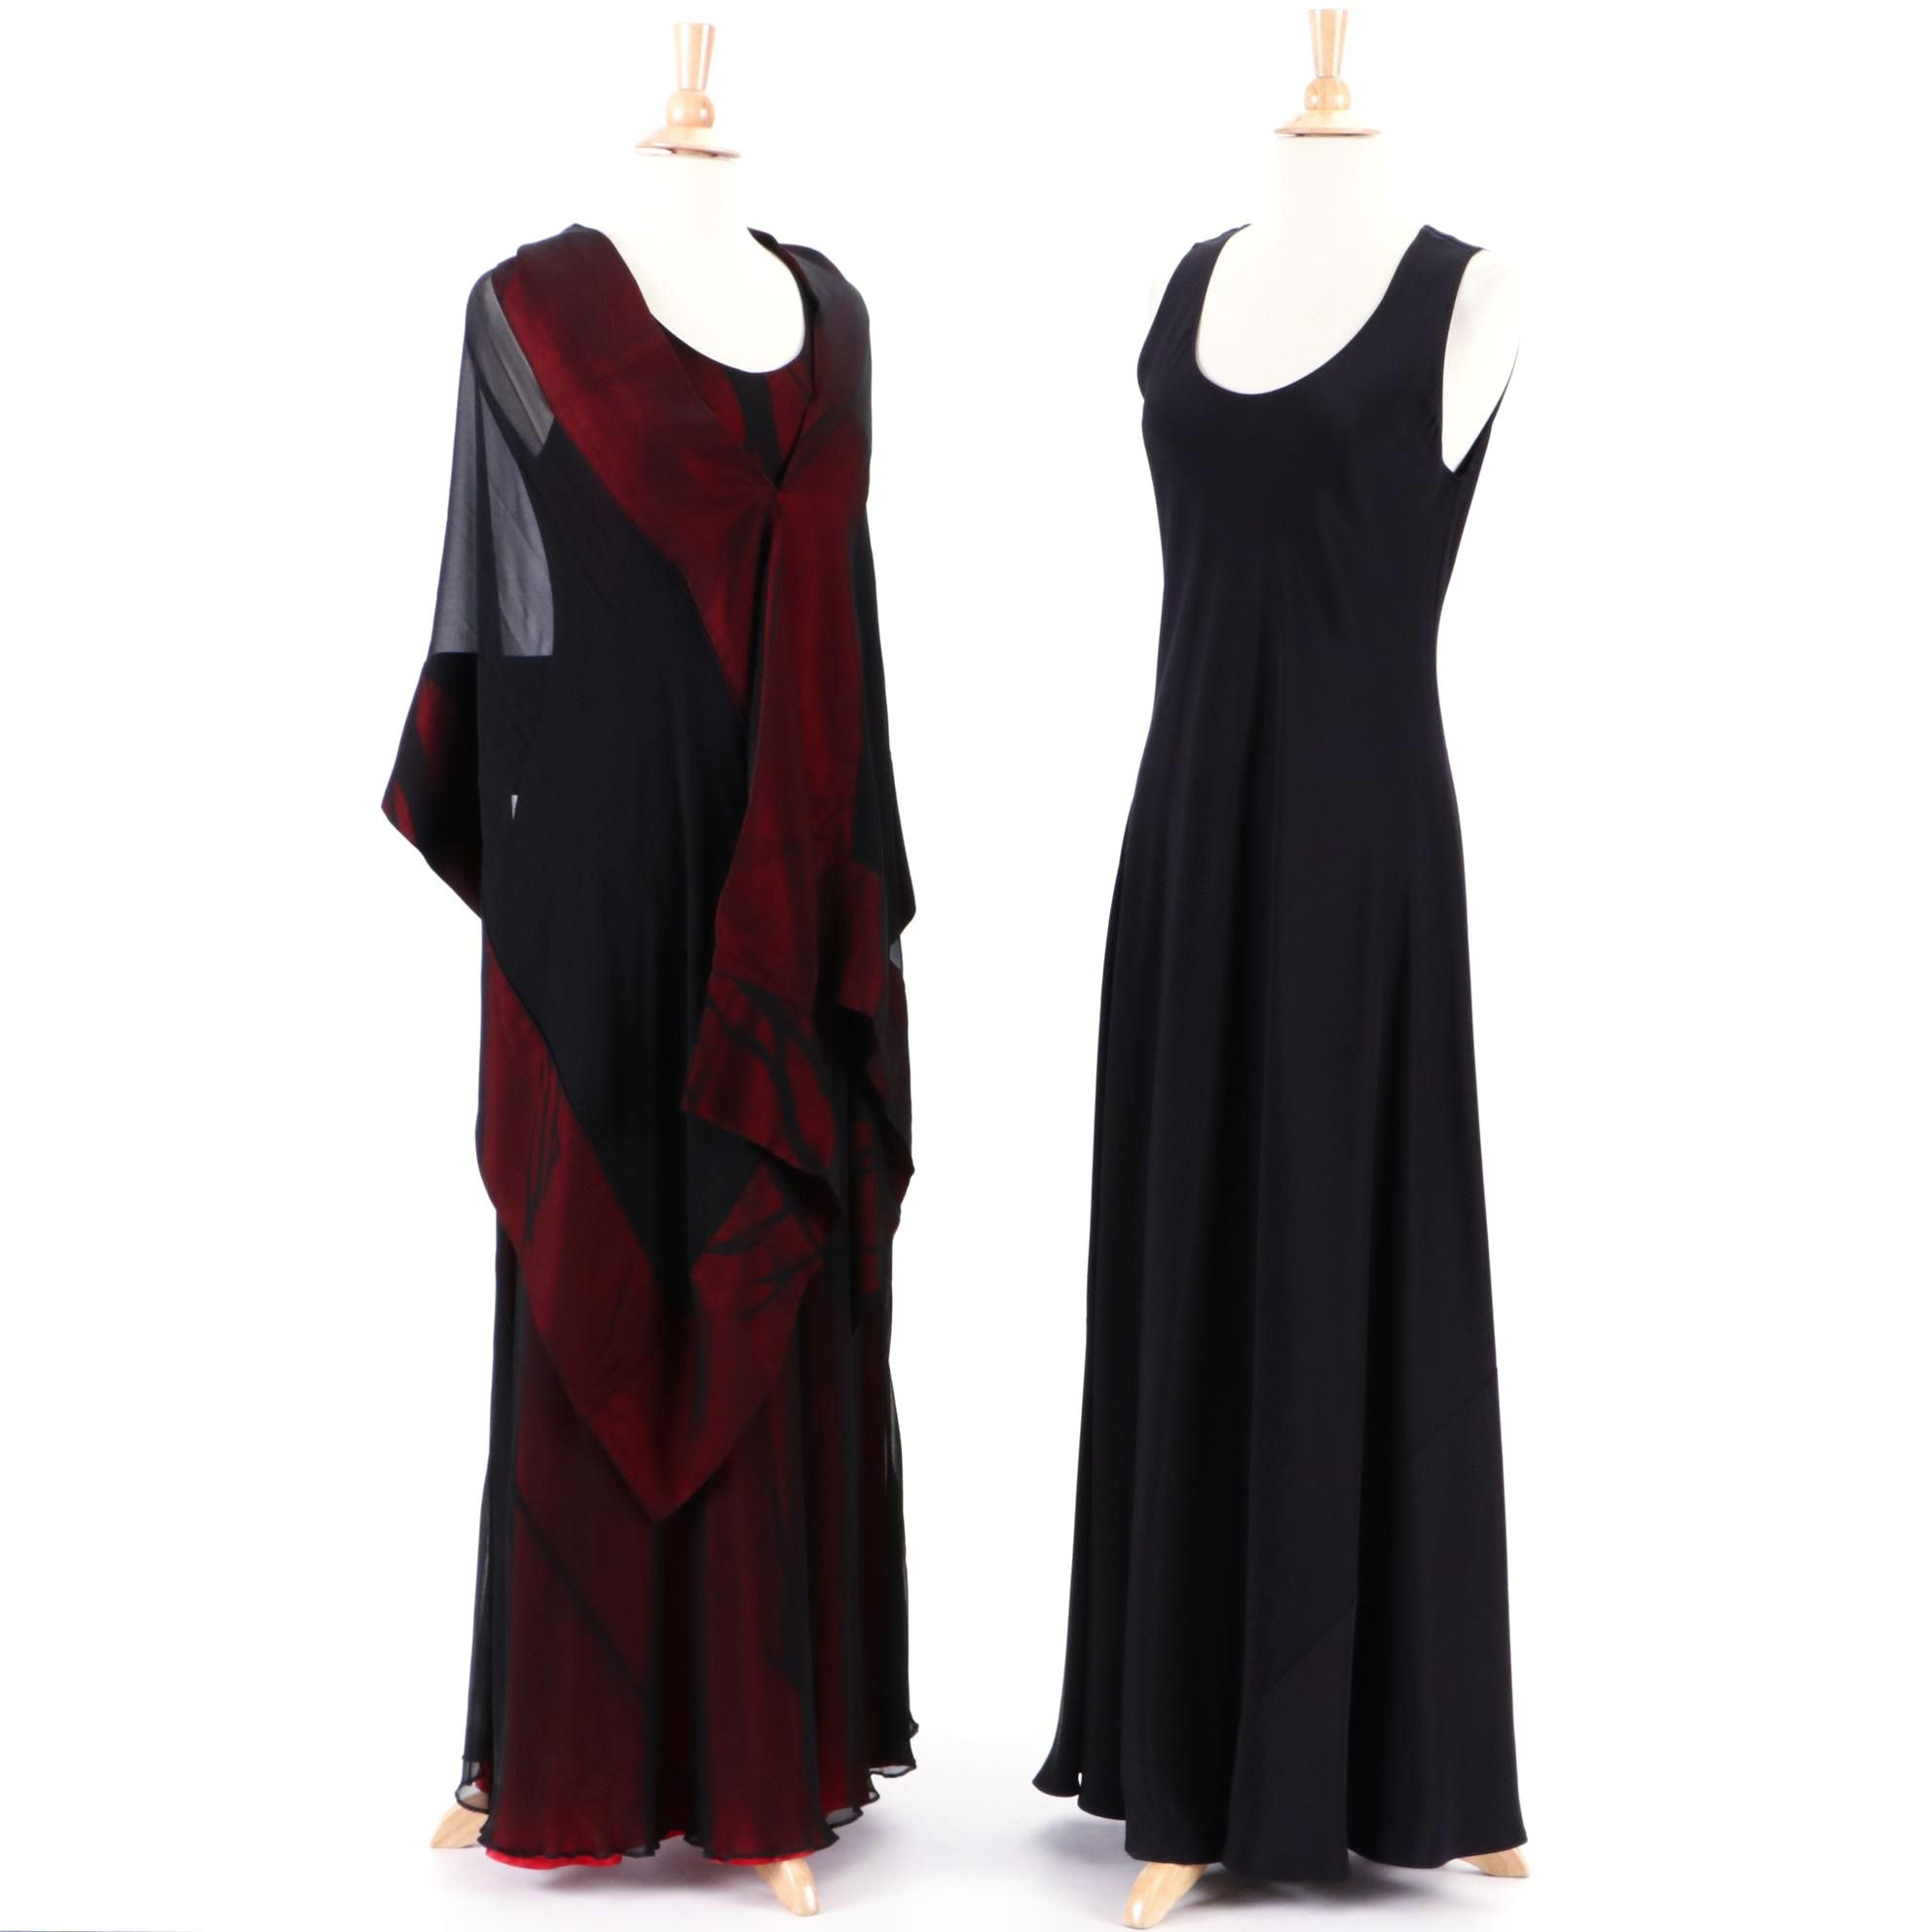 Women's Kane Sells Studio Sleeveless Evening Dresses including Shoulder Wrap